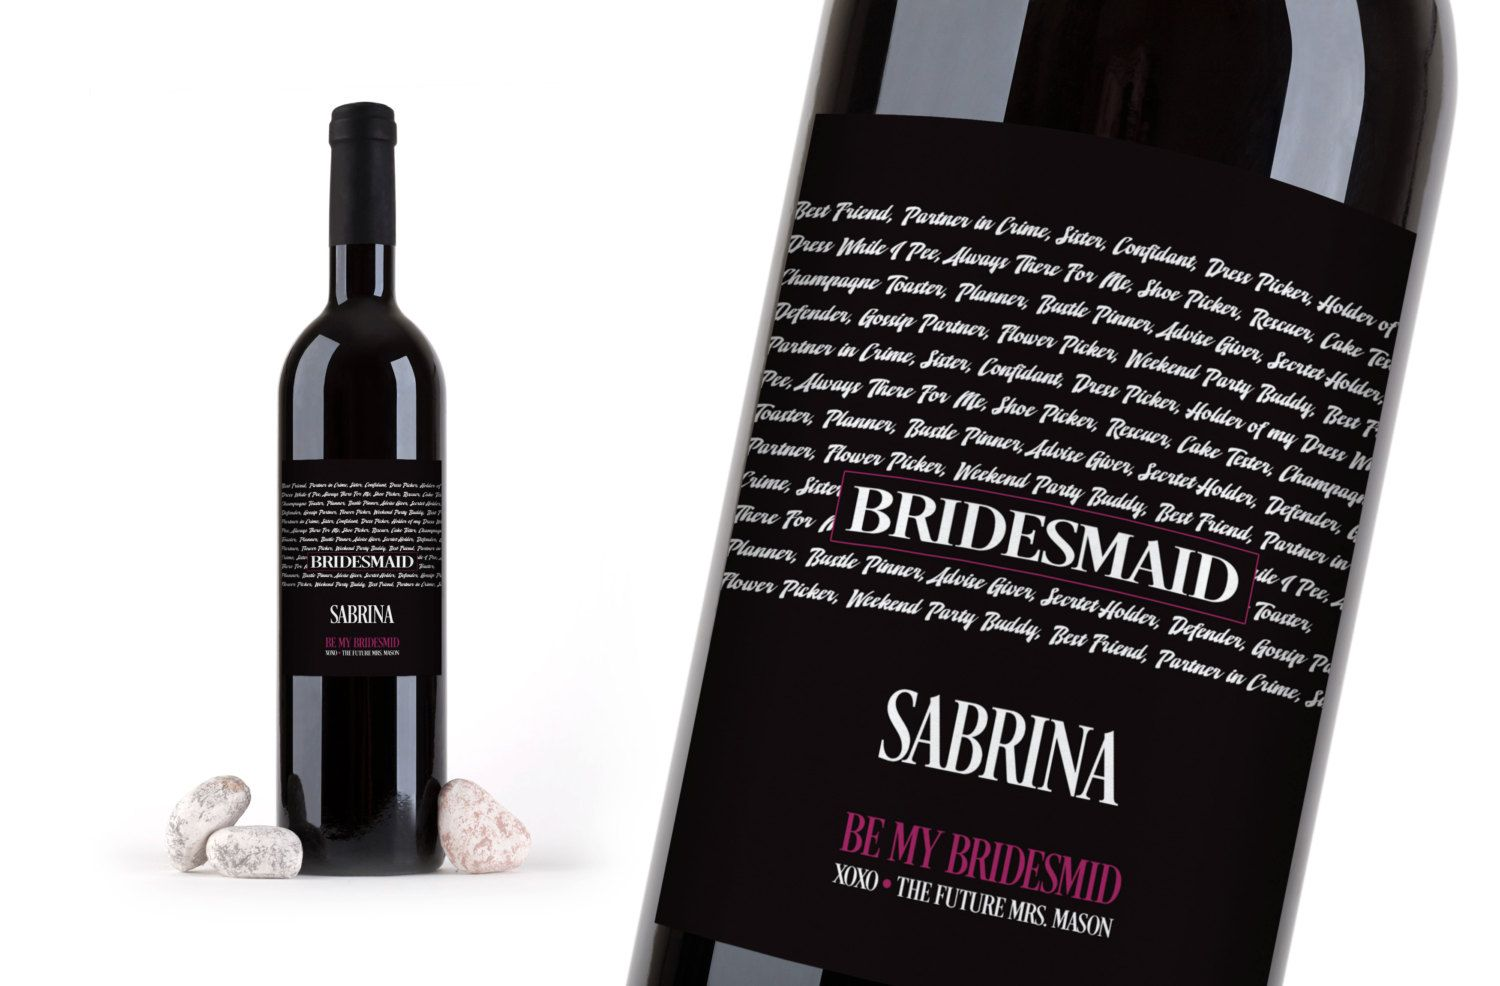 WEDDING WINE LABEL, Wine Bottle label to ask your bridesmaids, ask maid of honor, ask girls, Got my guy, need my girls, wedding wine labels by CreativeLabelDesigns on Etsy